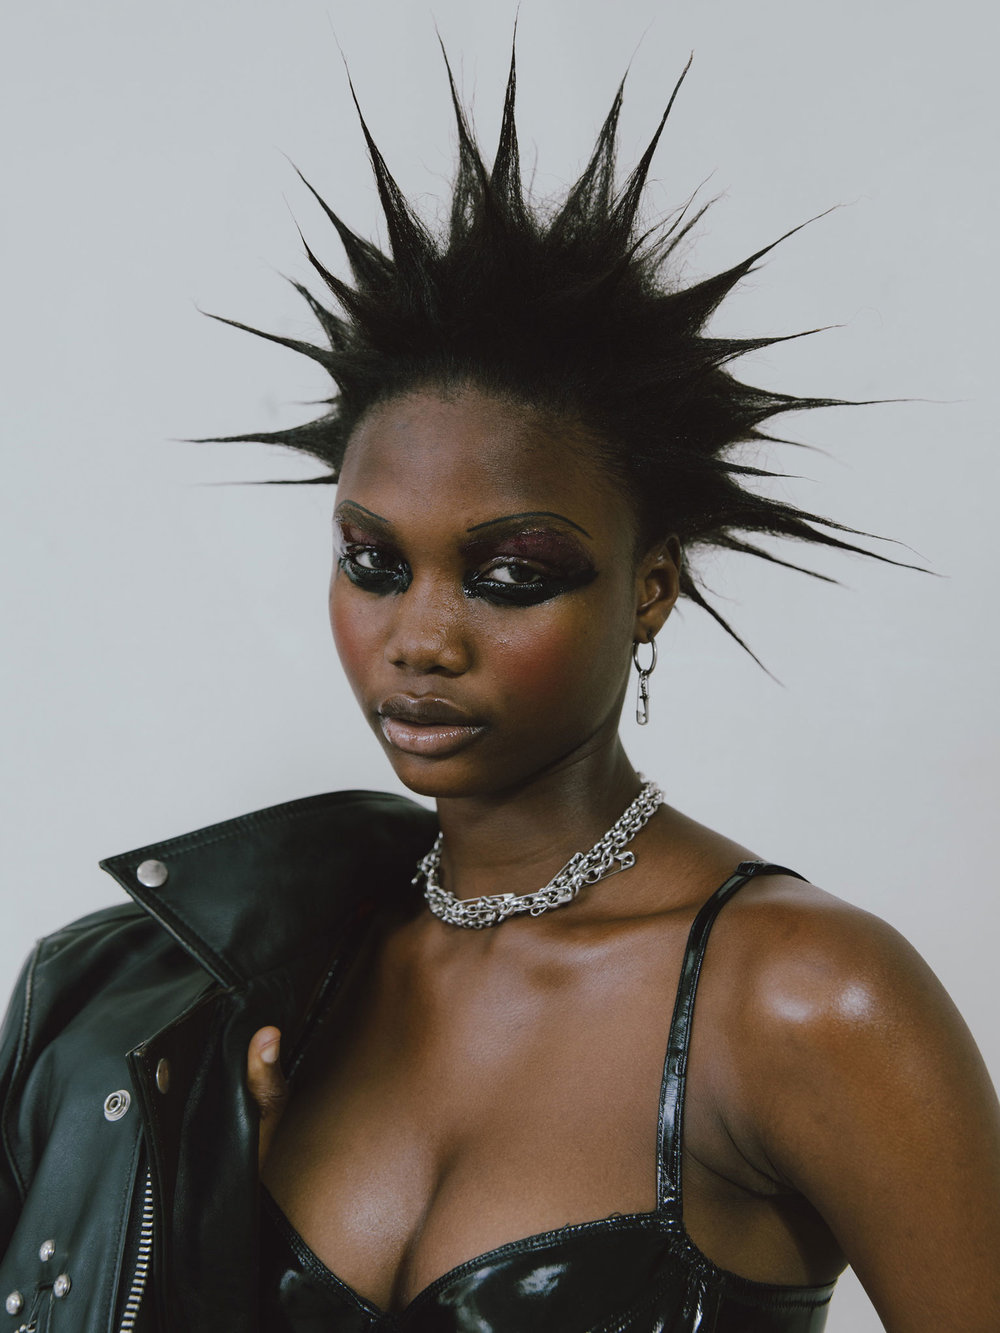 Olabisi wears LEWIS LEATHERS ARCHIVE jacket, DEBORAH MARQUIT bra, GIVENCHY earring (with added safety pin), SLIM BARRETT necklace (with added safety pins).